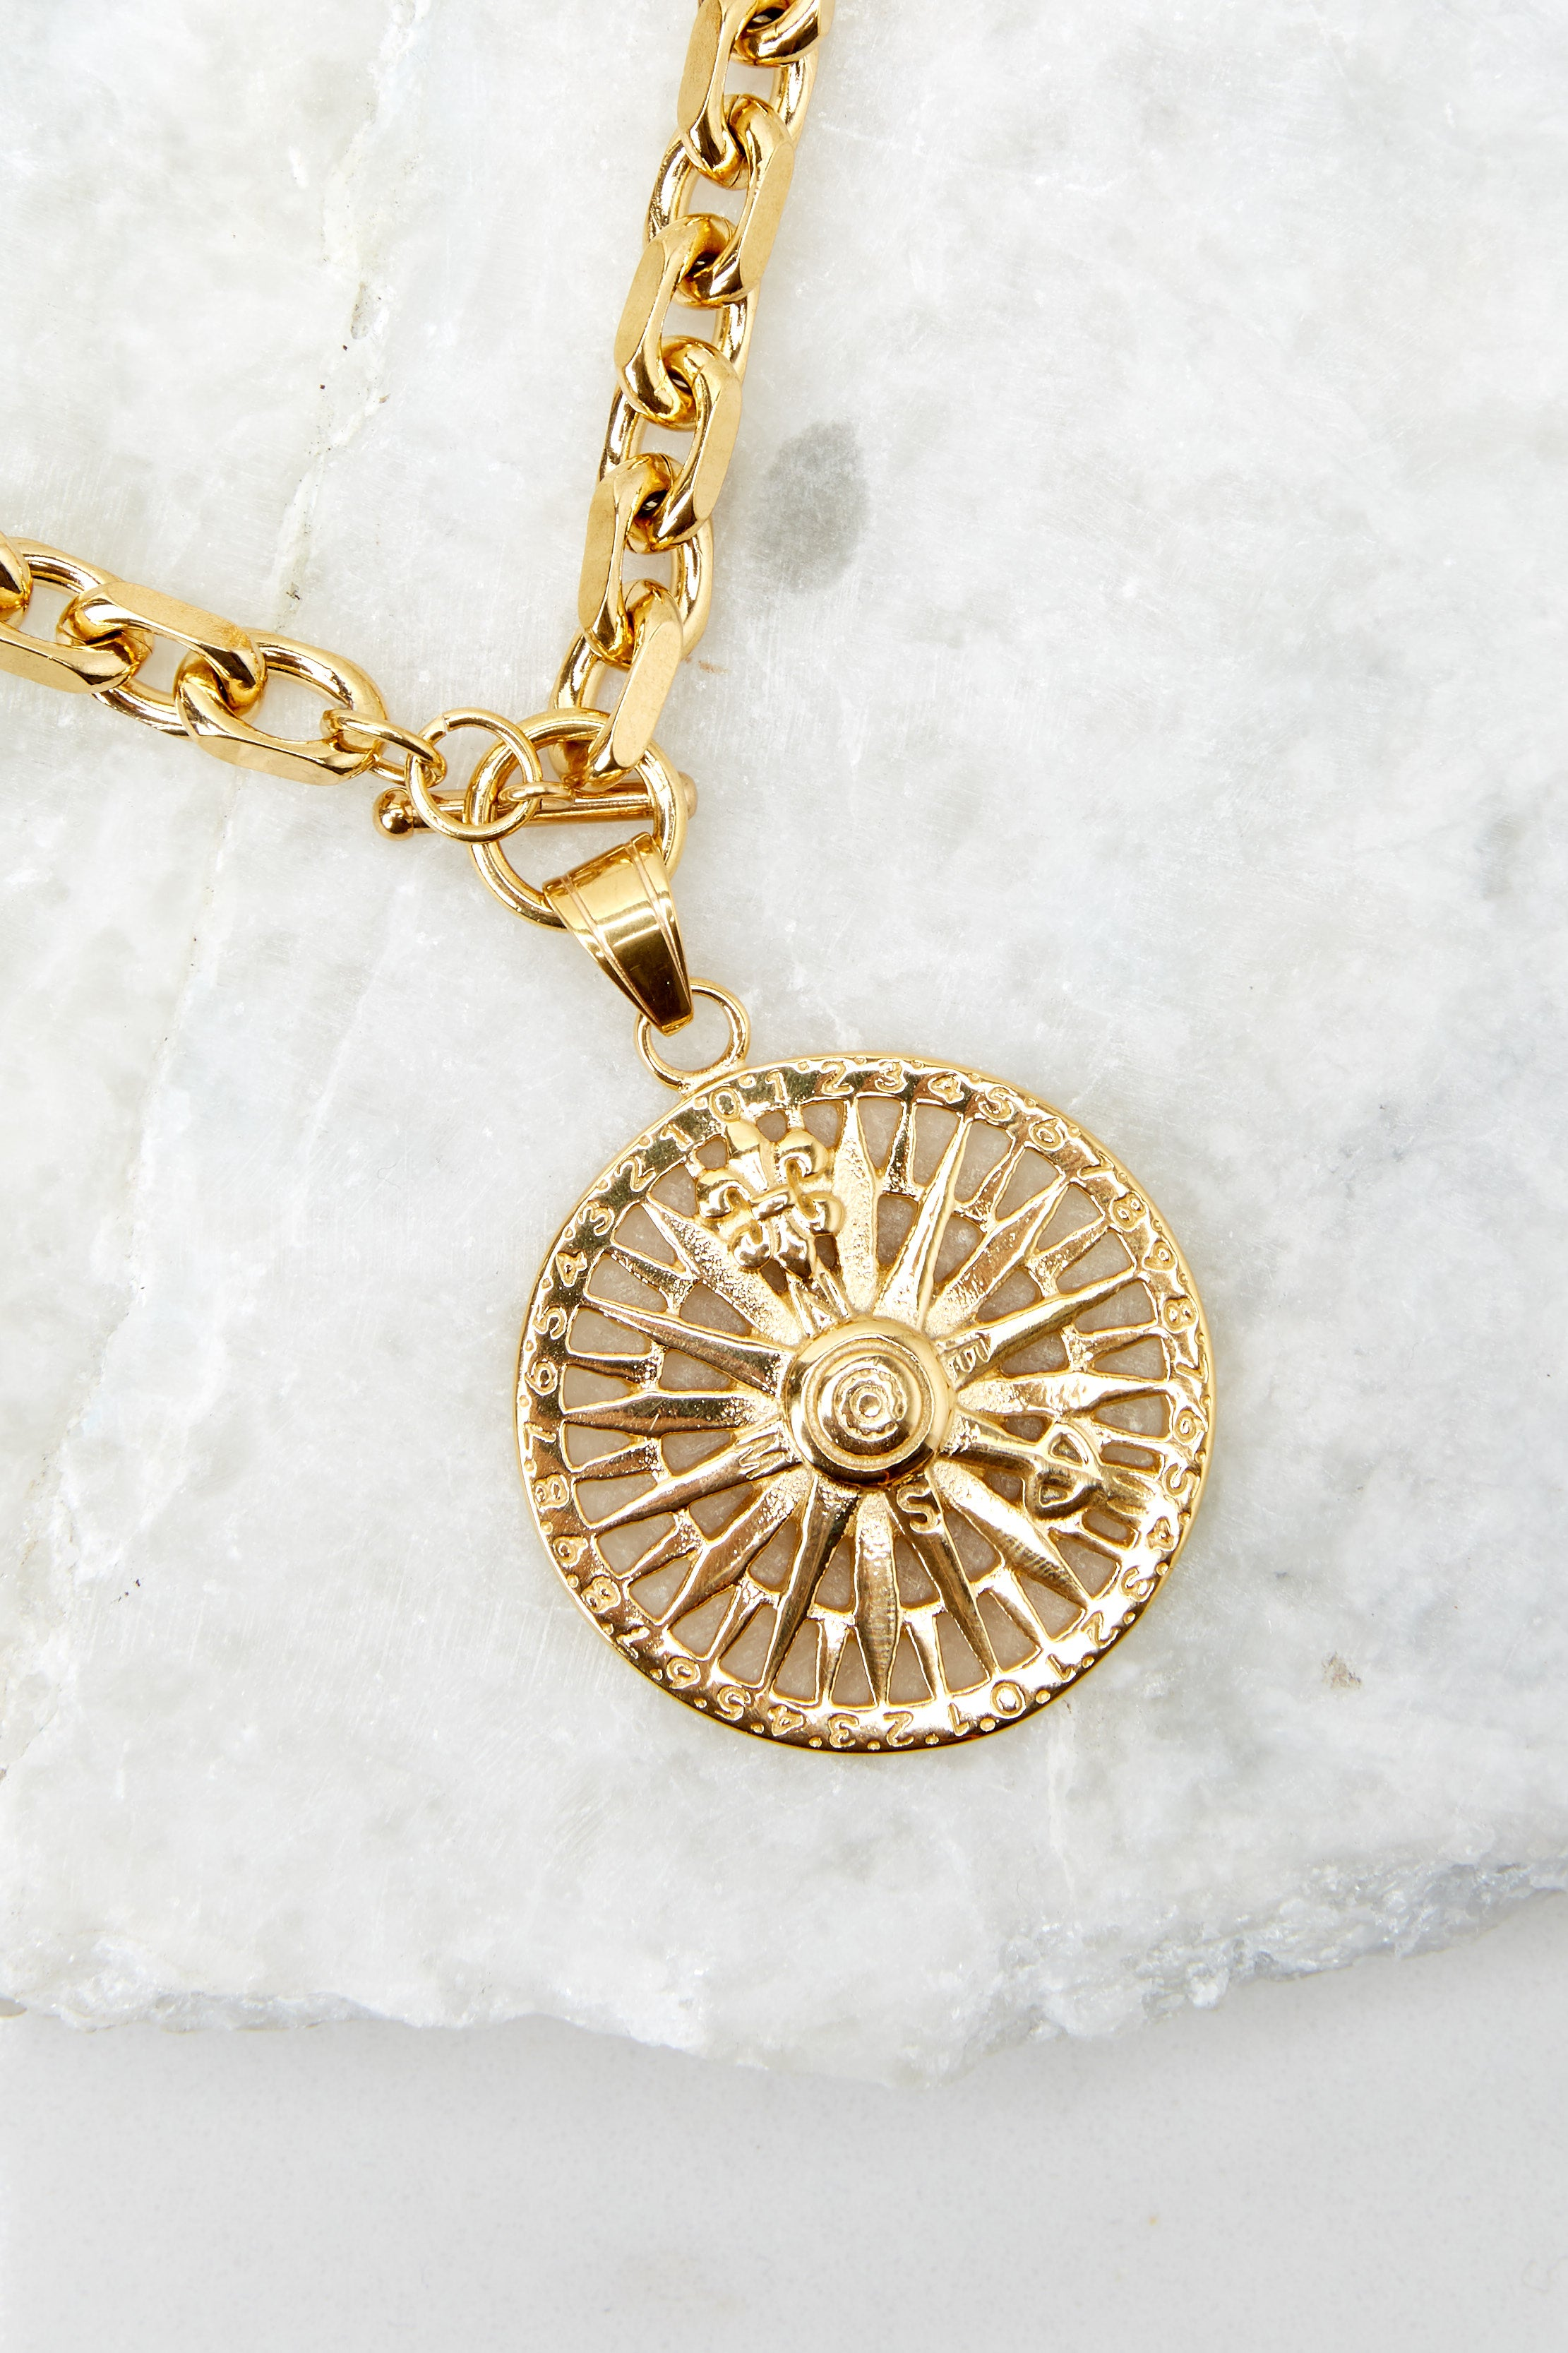 My Compass Gold Necklace